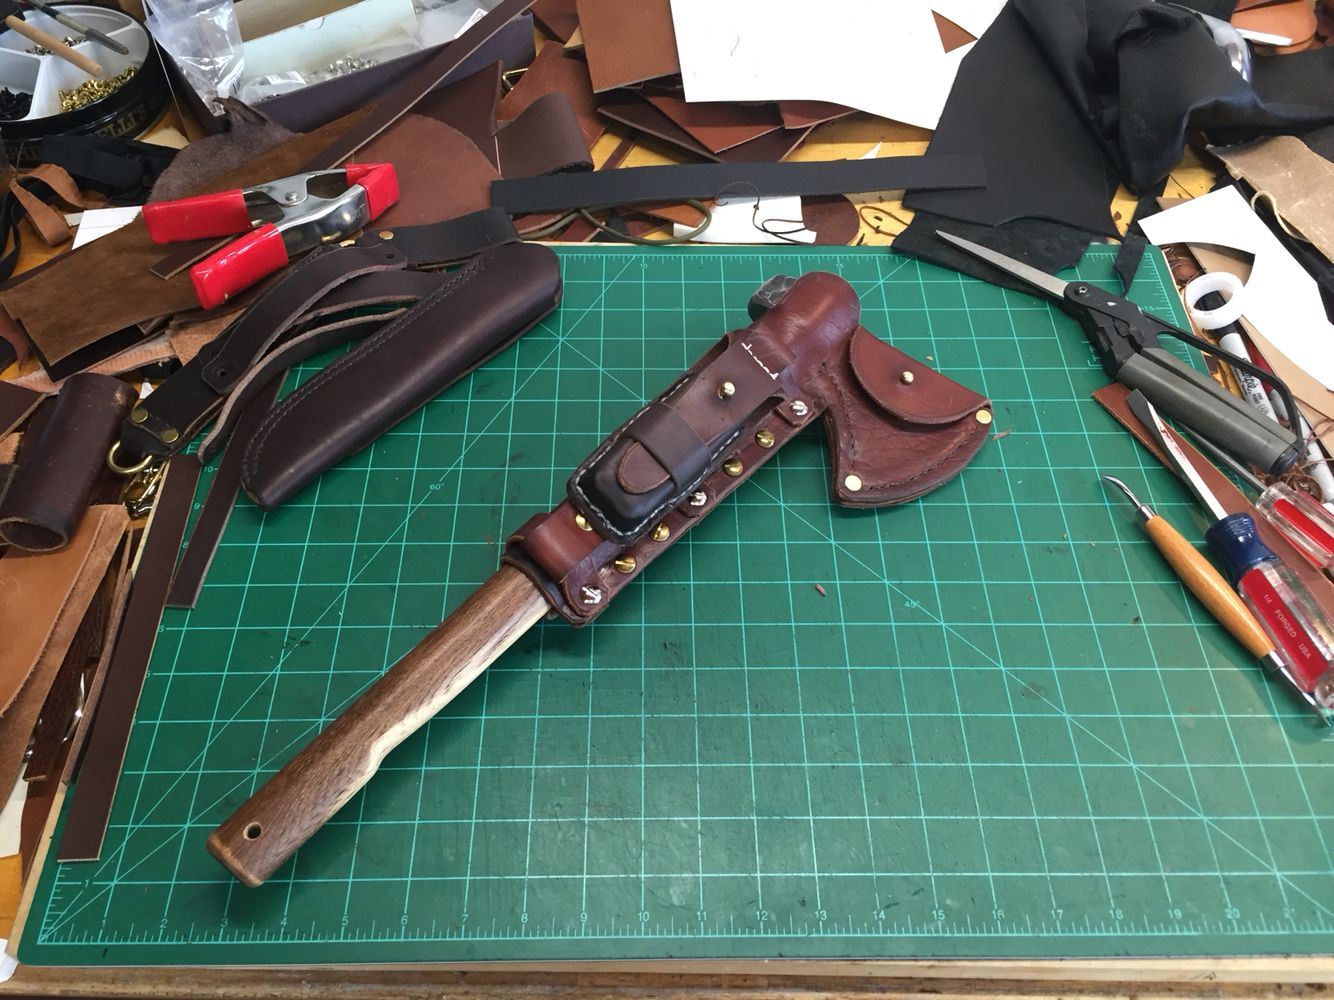 Bush Craft Veg Tanned Leather sheath with adjustable / removable strap system to attach smaller sheaths of your choice. This one was made to fit the H&B Forge Medium Camp Hawk.